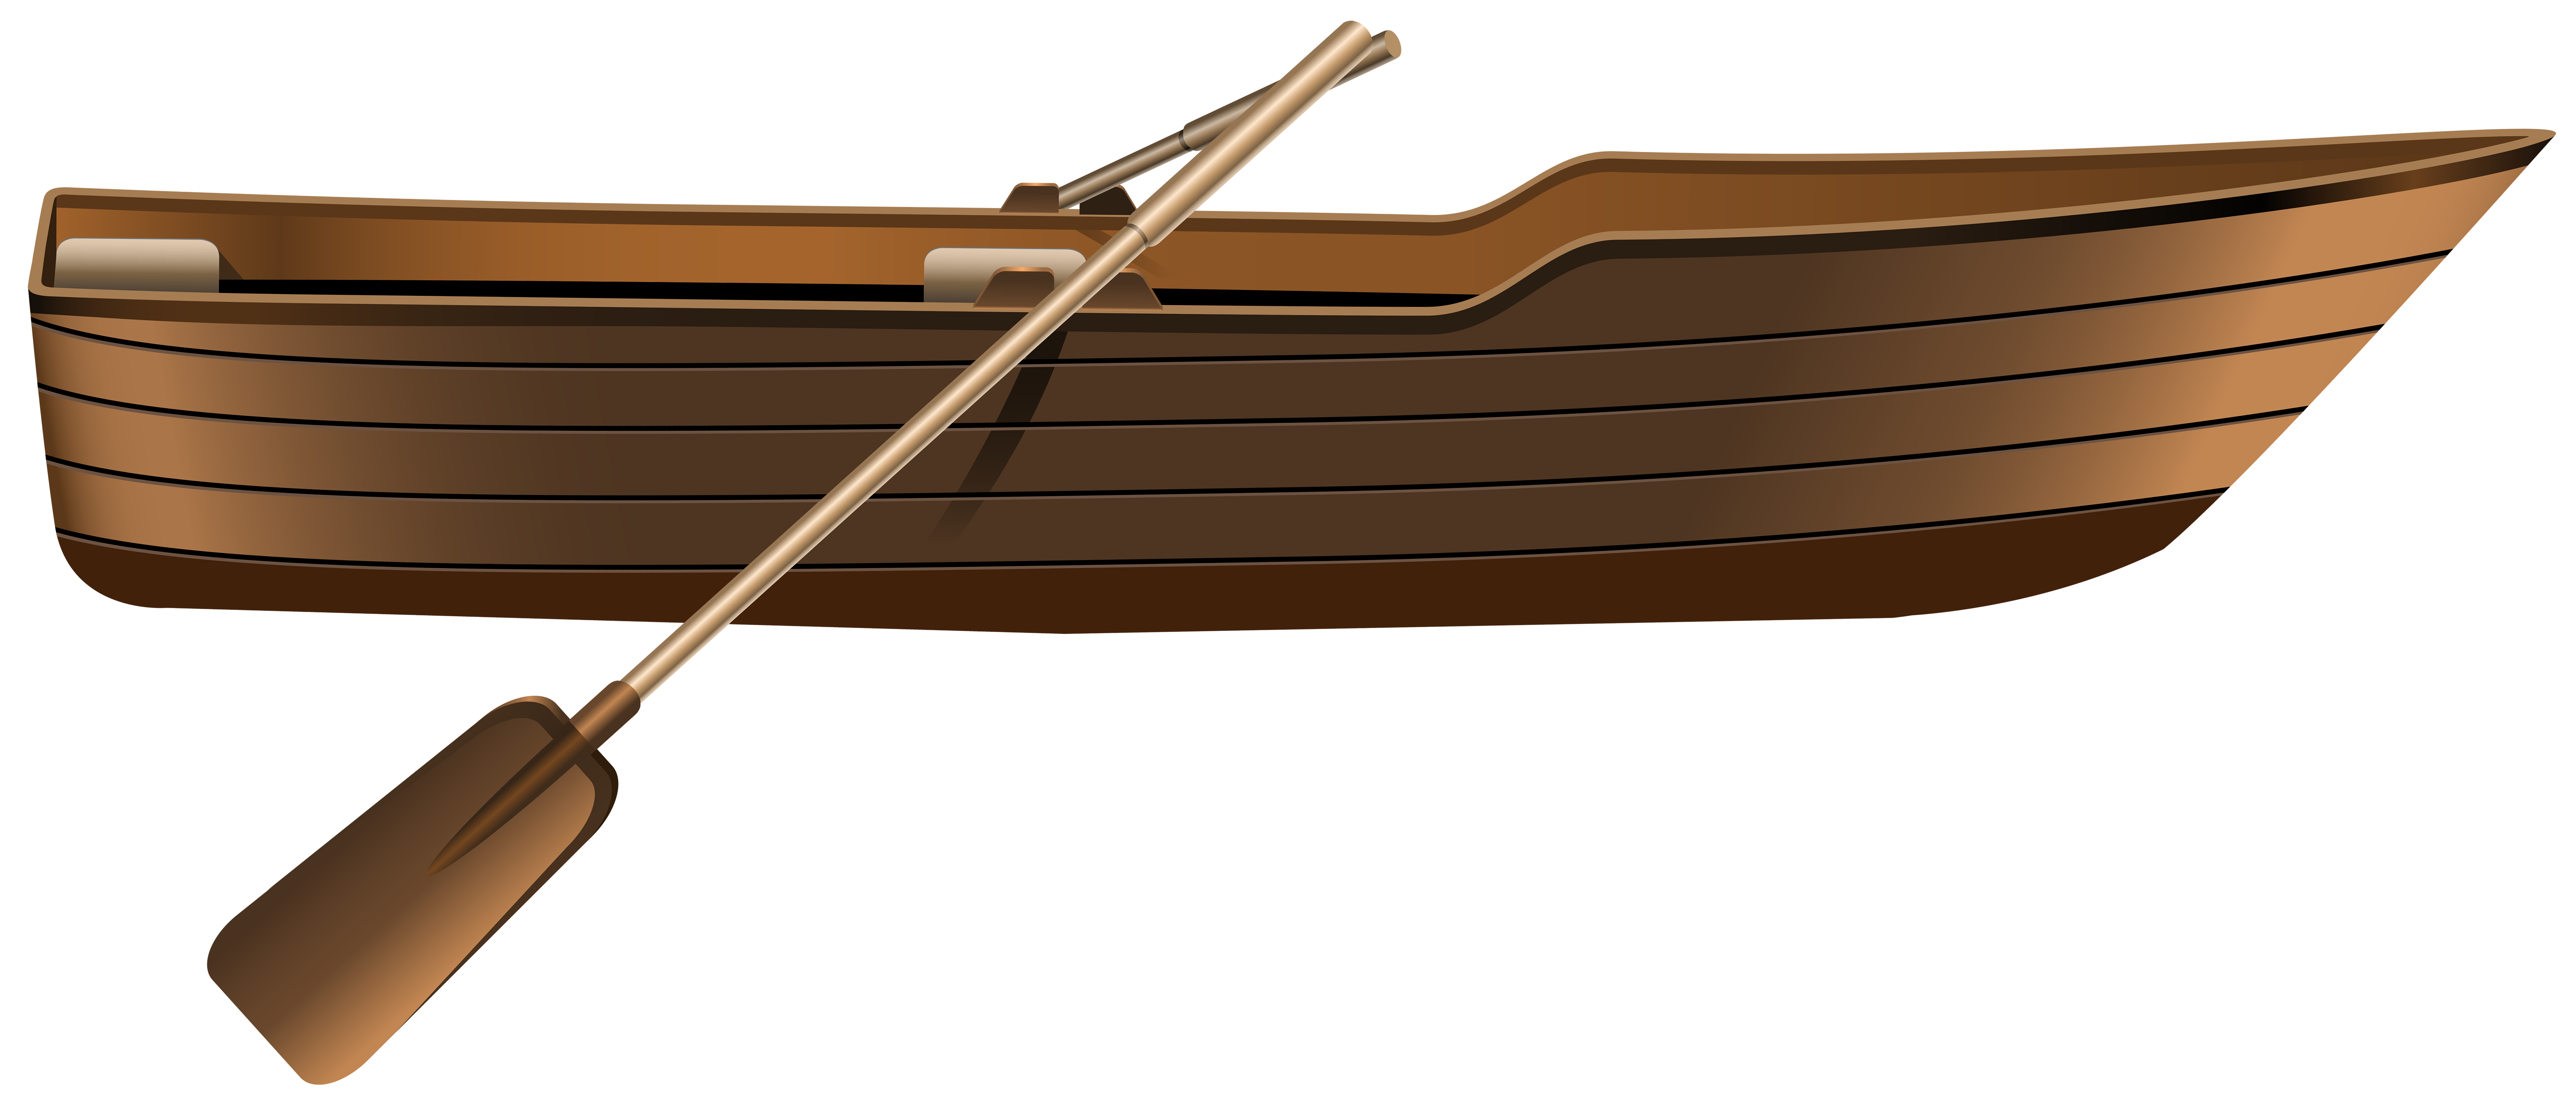 Boat PNG images.